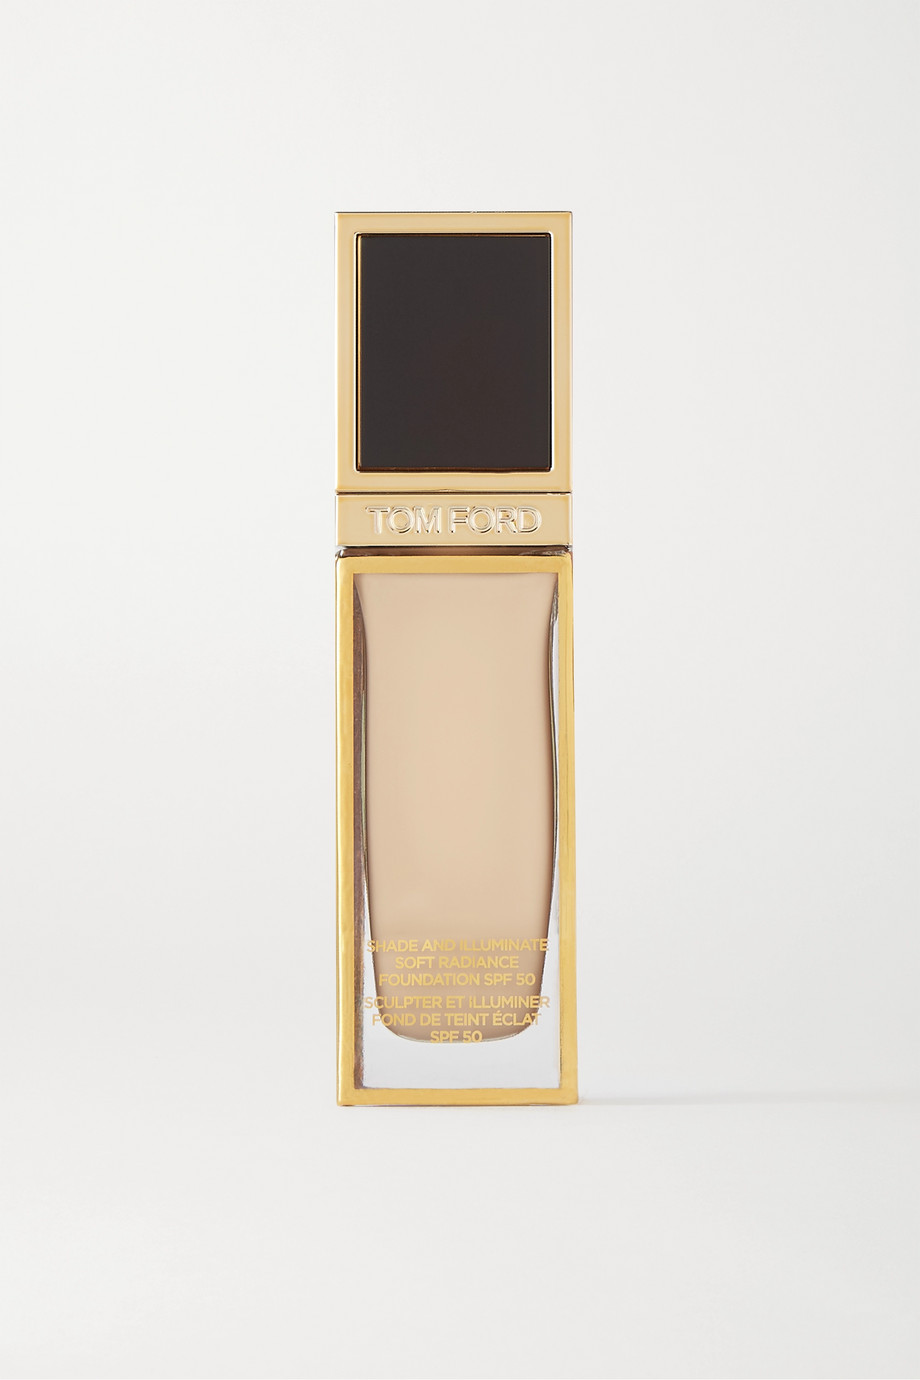 TOM FORD BEAUTY Shade and Illuminate Soft Radiance Foundation SPF50 - 1.1 Warm Sand, 30ml